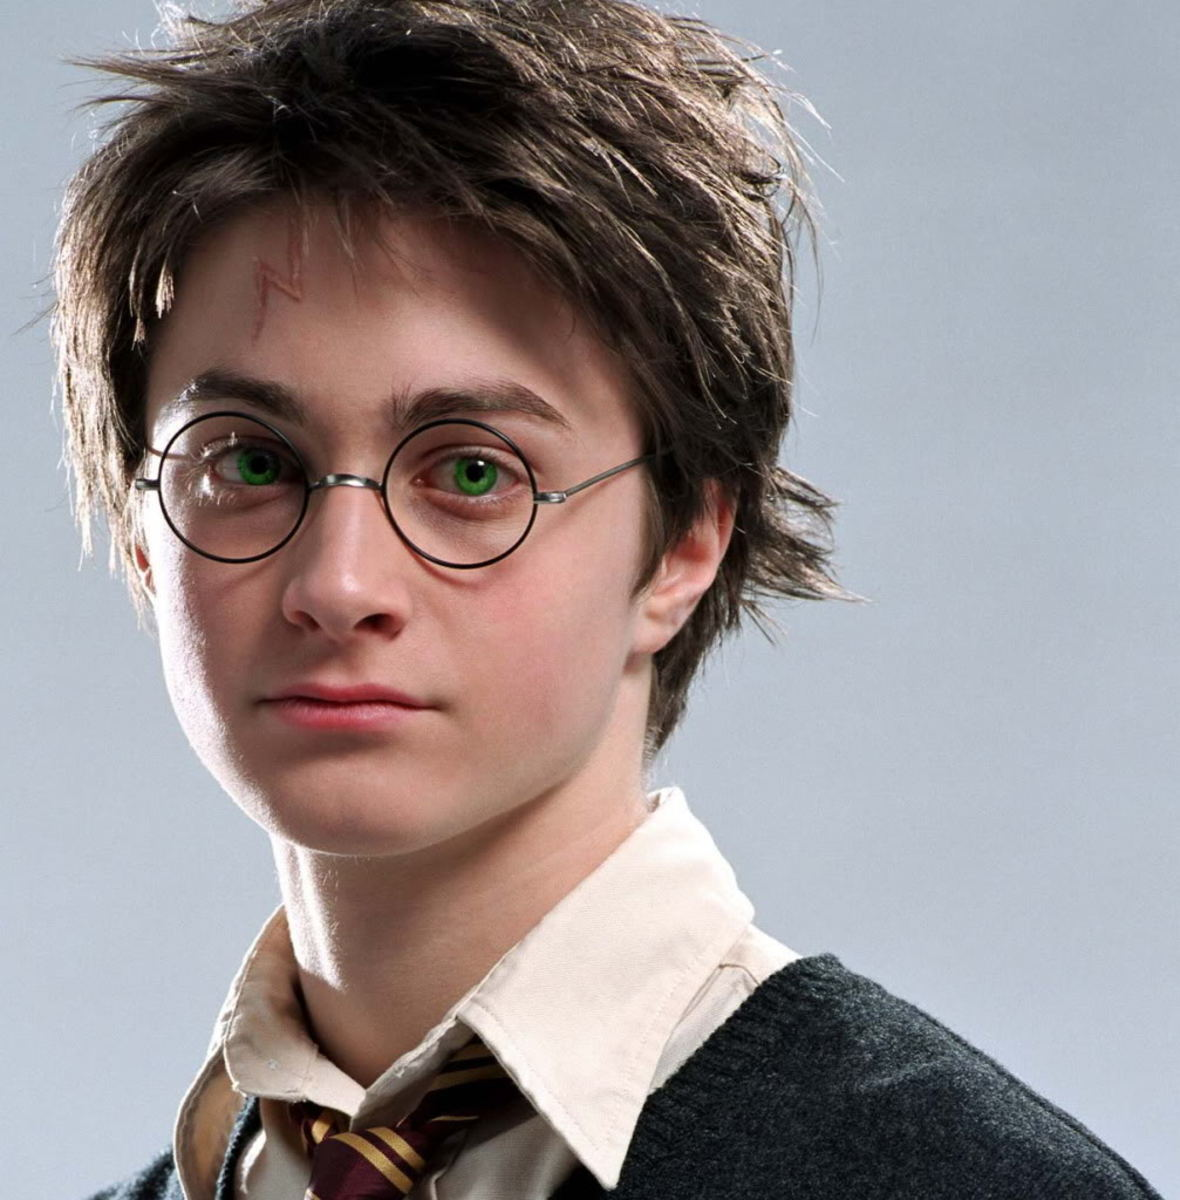 Harry Potter classic boy's hairstyle